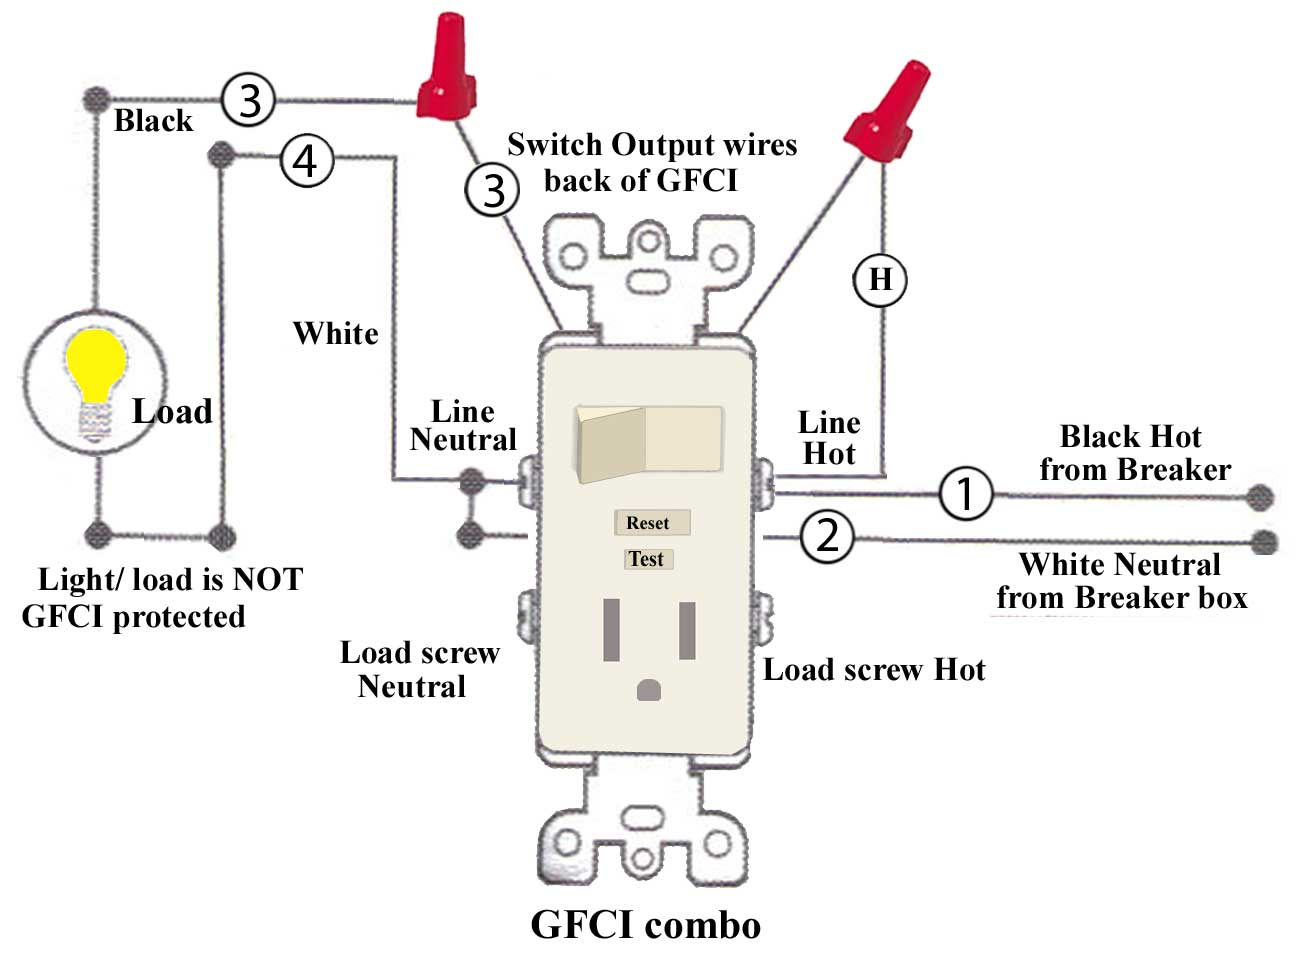 GFCI combo wiring 4 how to install and troubleshoot gfci gfci with switch wiring diagram at soozxer.org